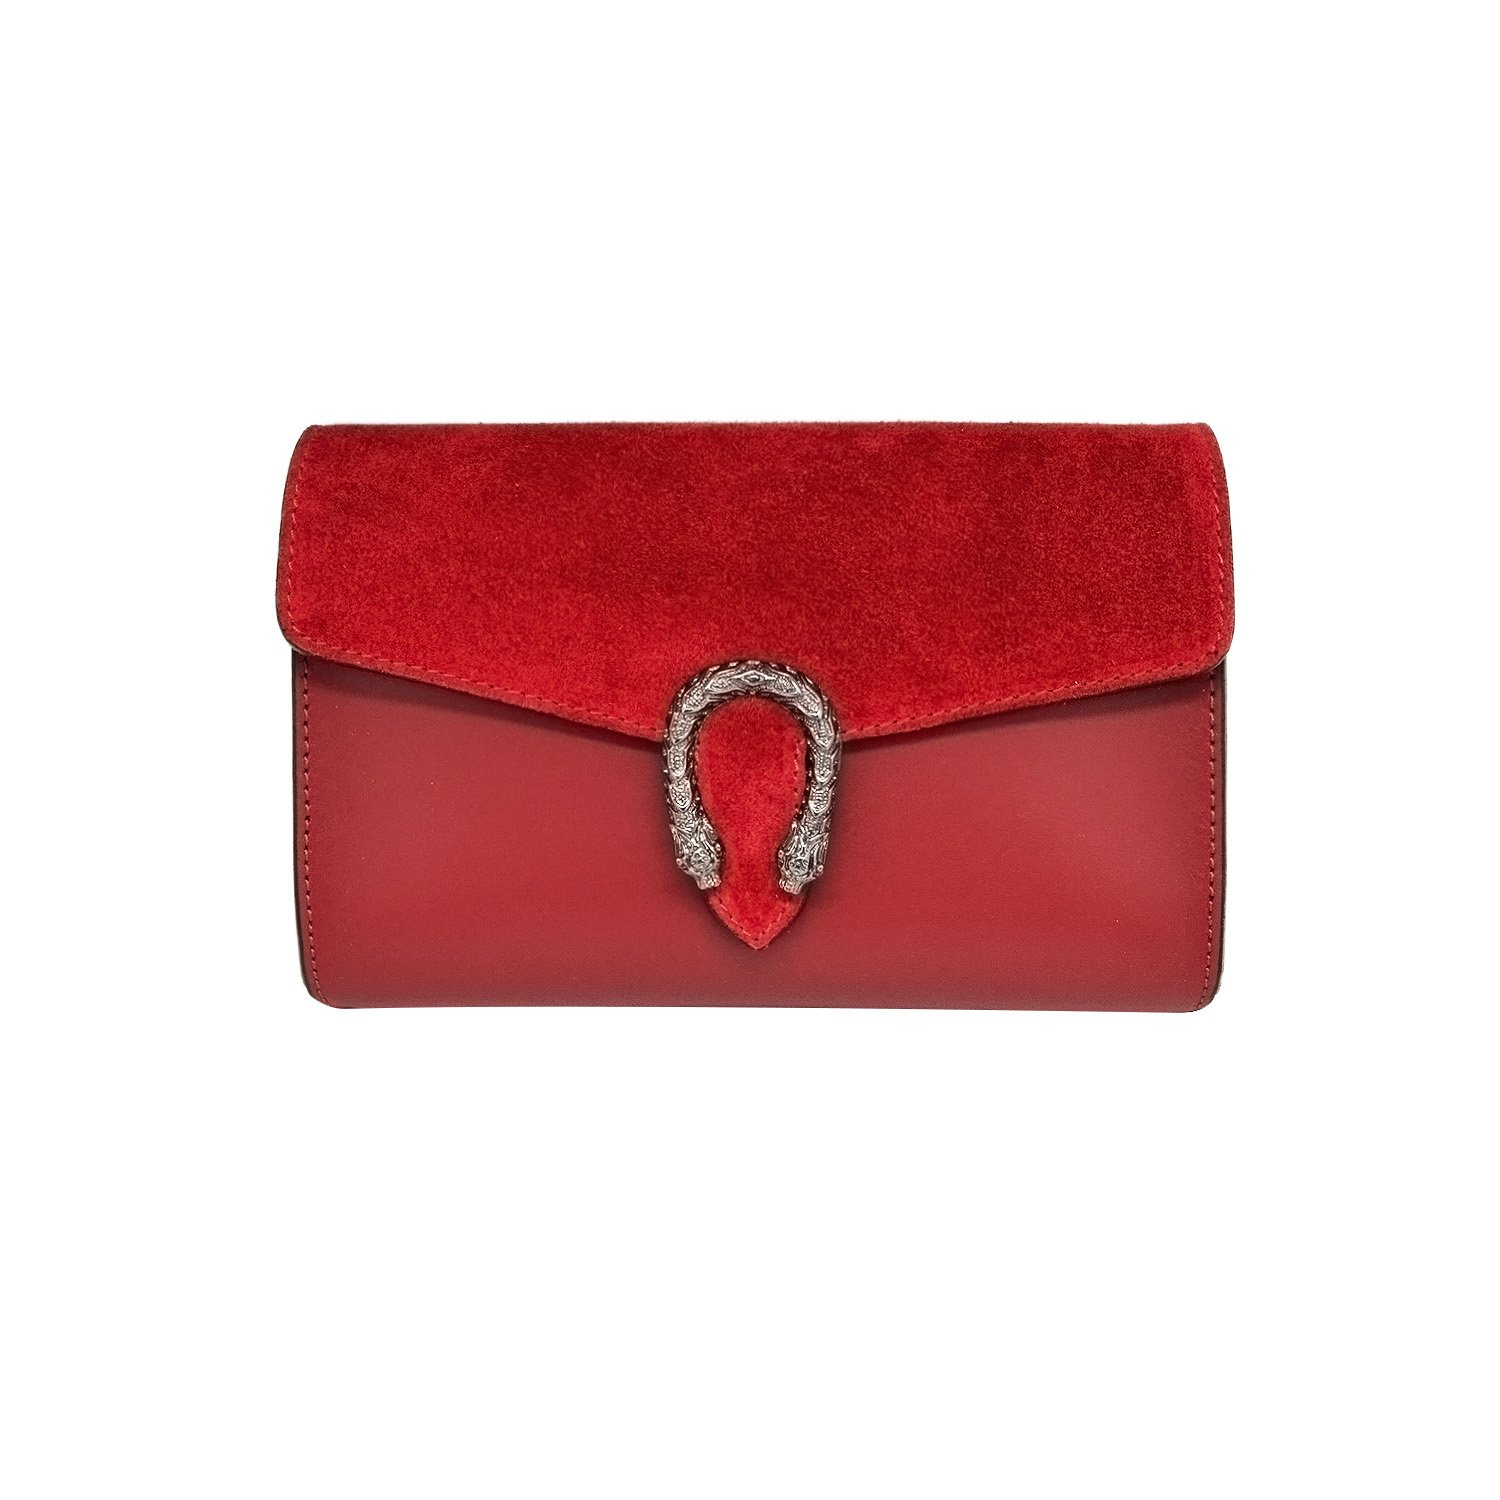 RONDA CLUTCH Italian Baugette clutch mini wallet cross body bag with nickel chain smooth stiff leather and suede (Clutch red)